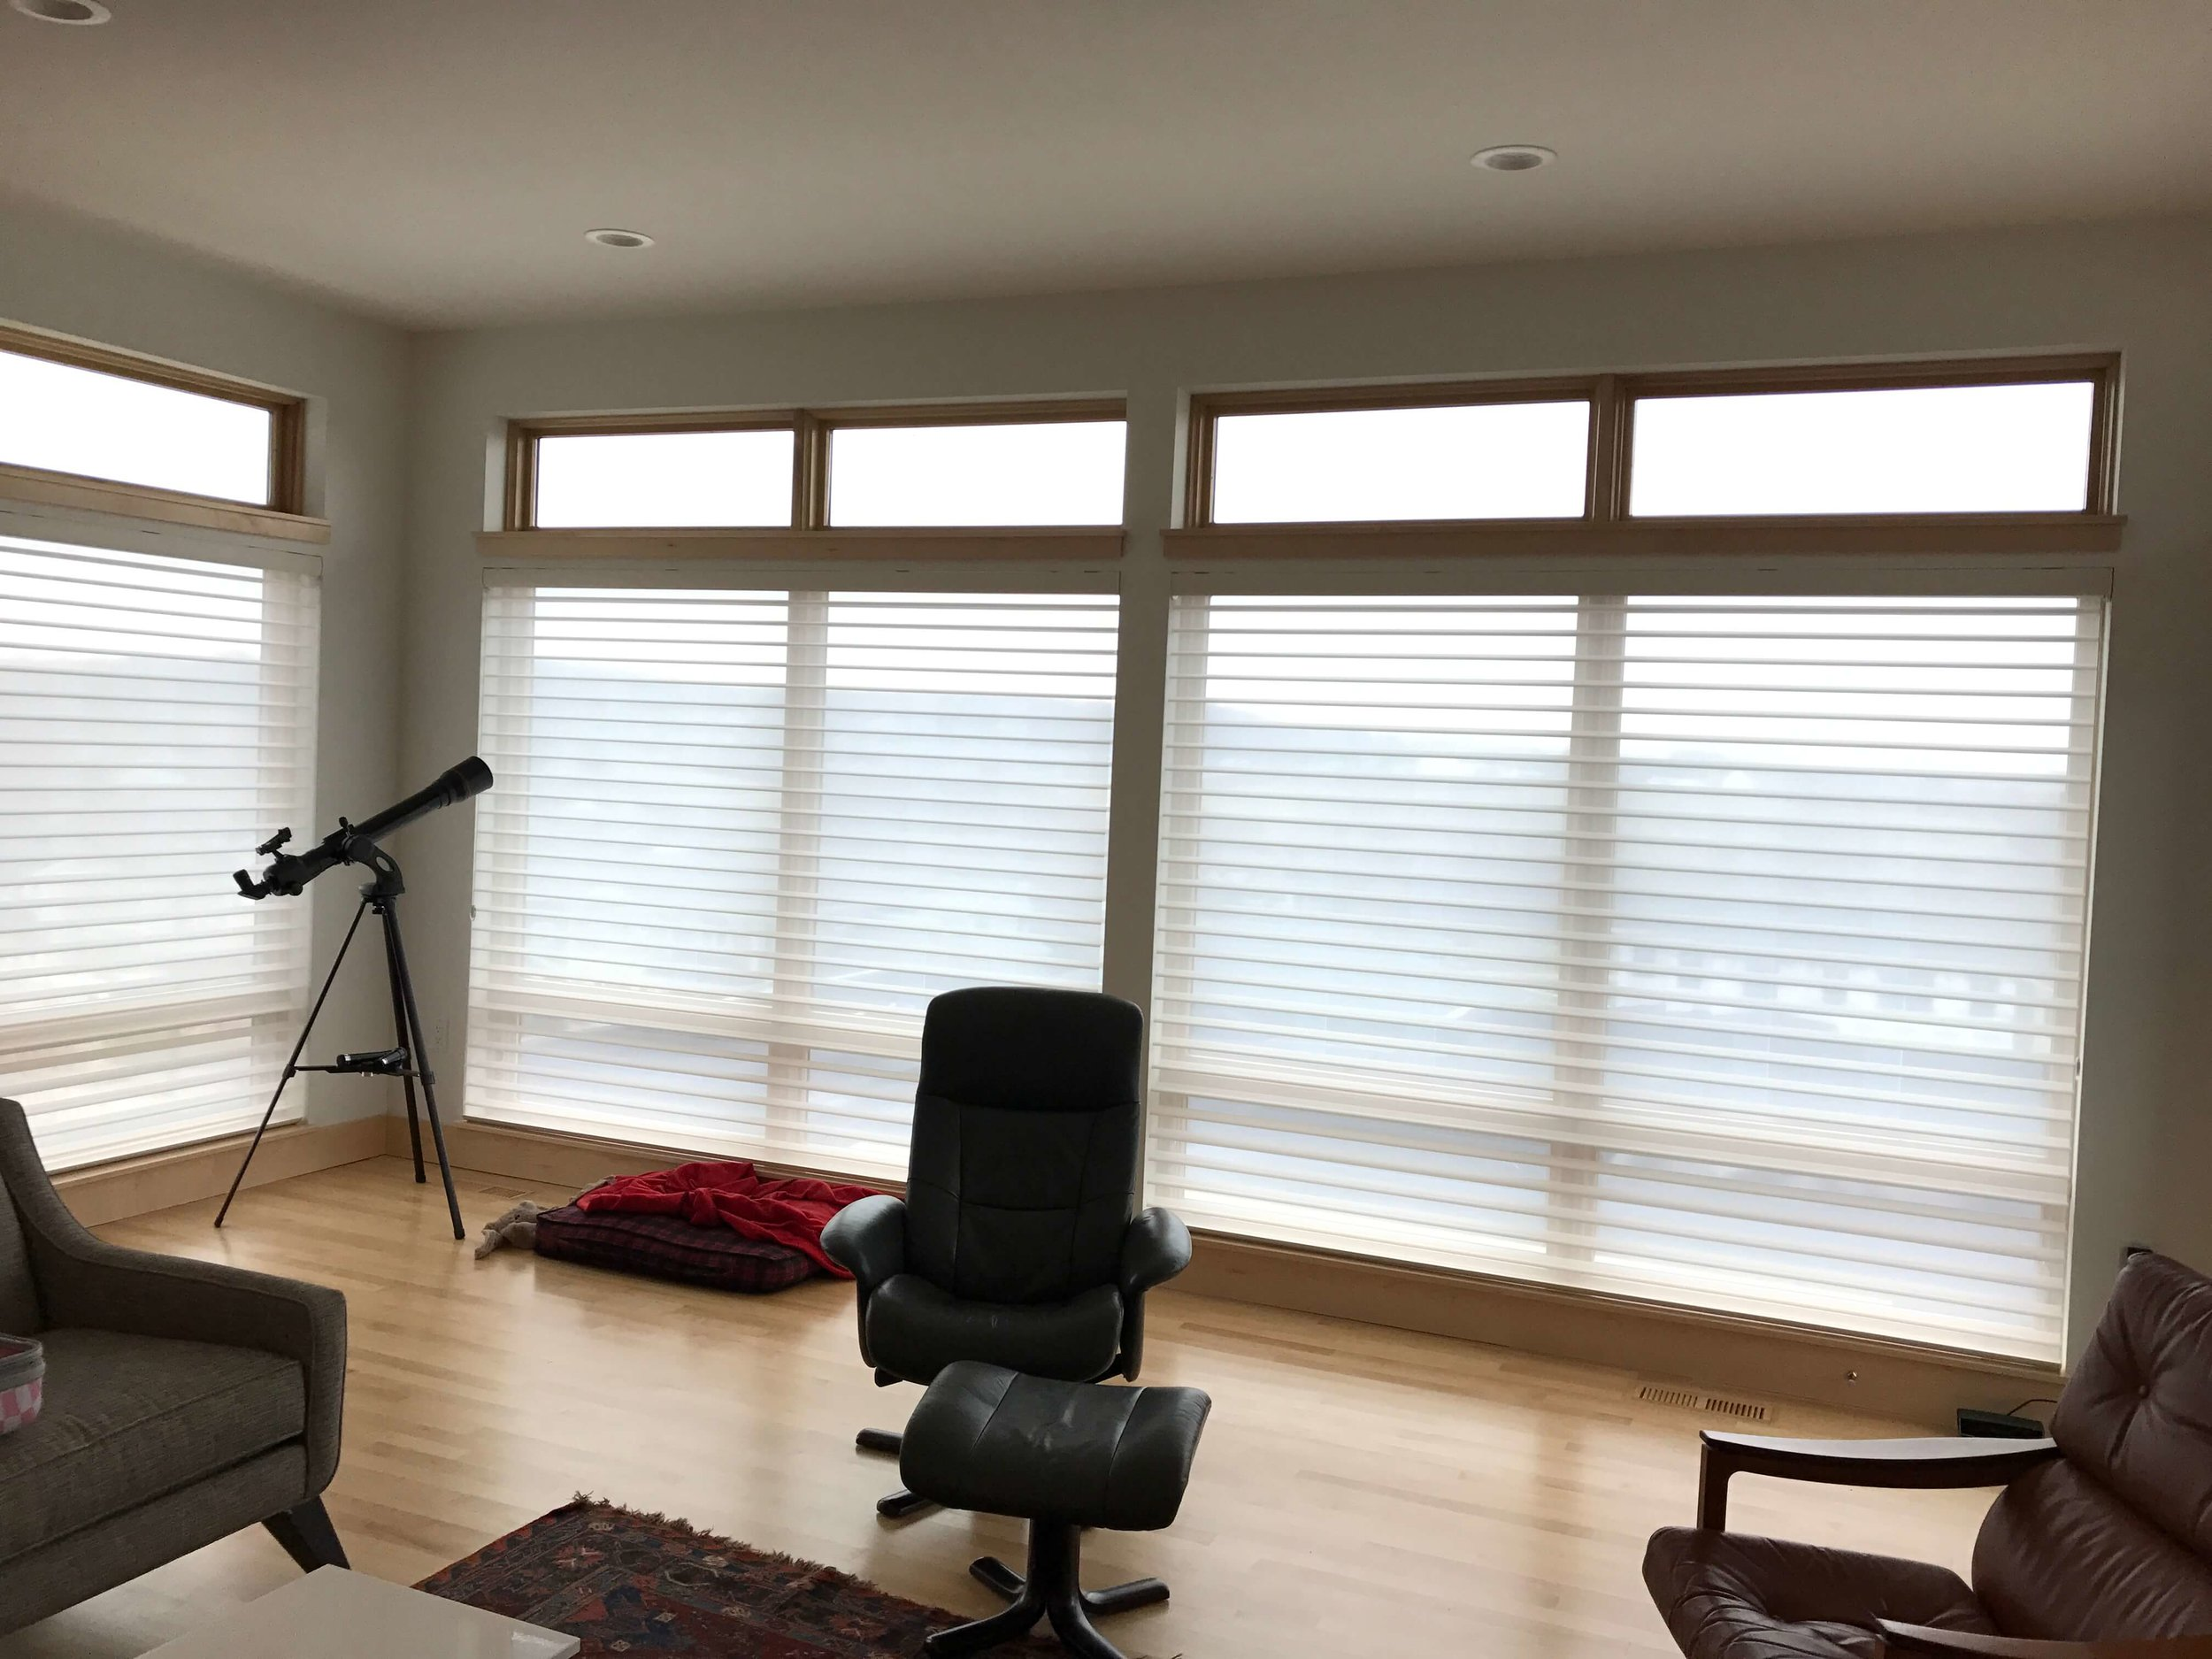 custom-window-treatments-coverings-fitchburg-wi.JPG